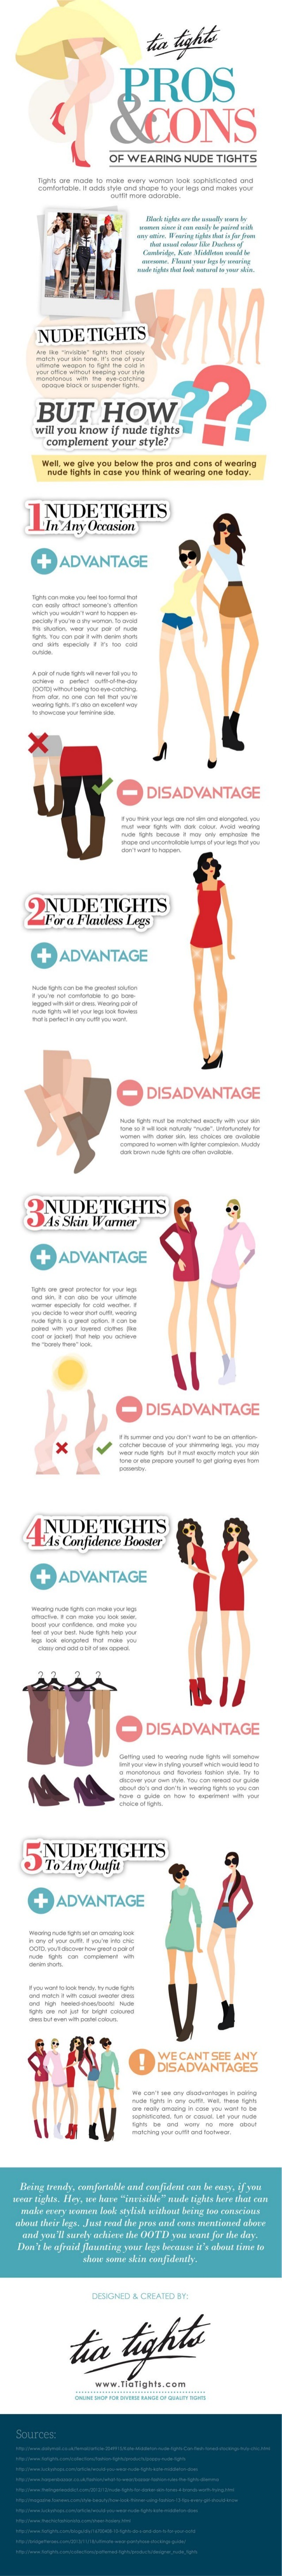 pros and cons of wearing nude tights